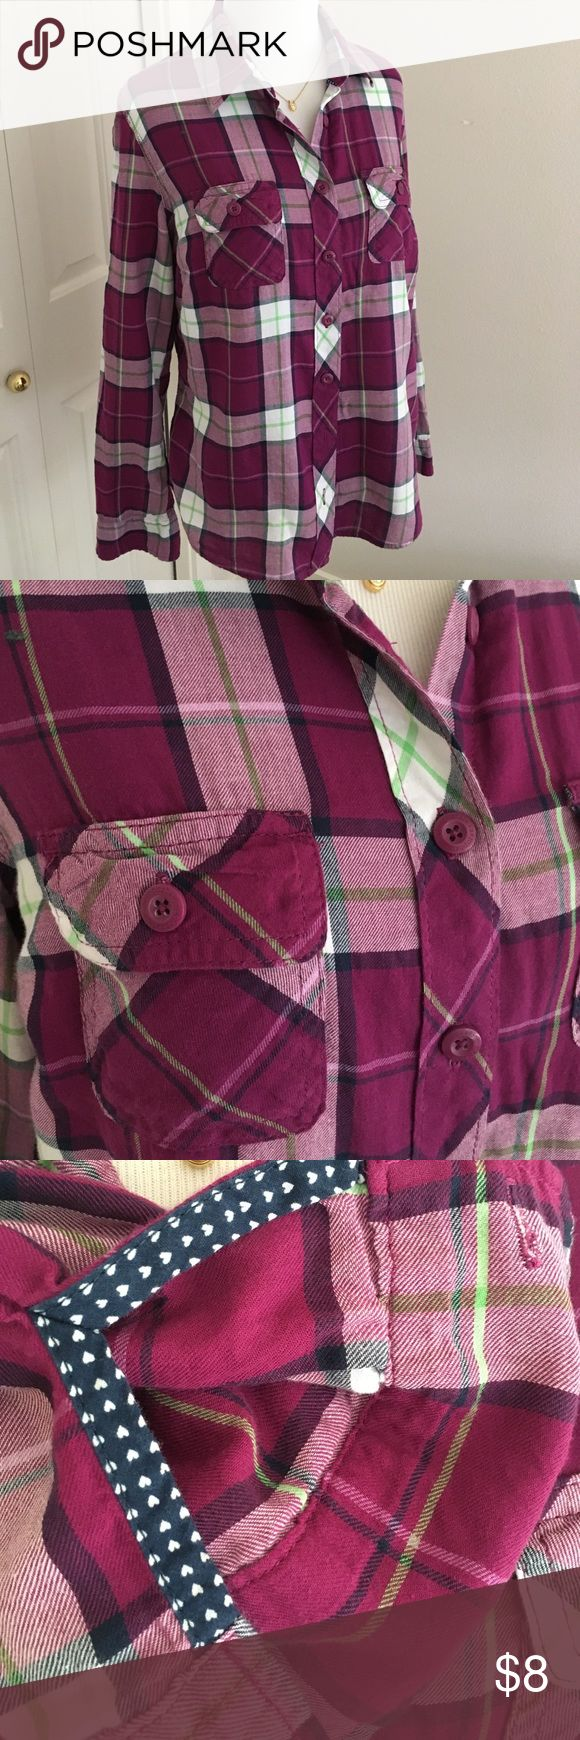 EUC Aeropostale flannel shirts, size L Dark pink flannel shirts with cute navy dots on the inside sleeves. Great used condition, no rips no stains. Aeropostale Tops Blouses